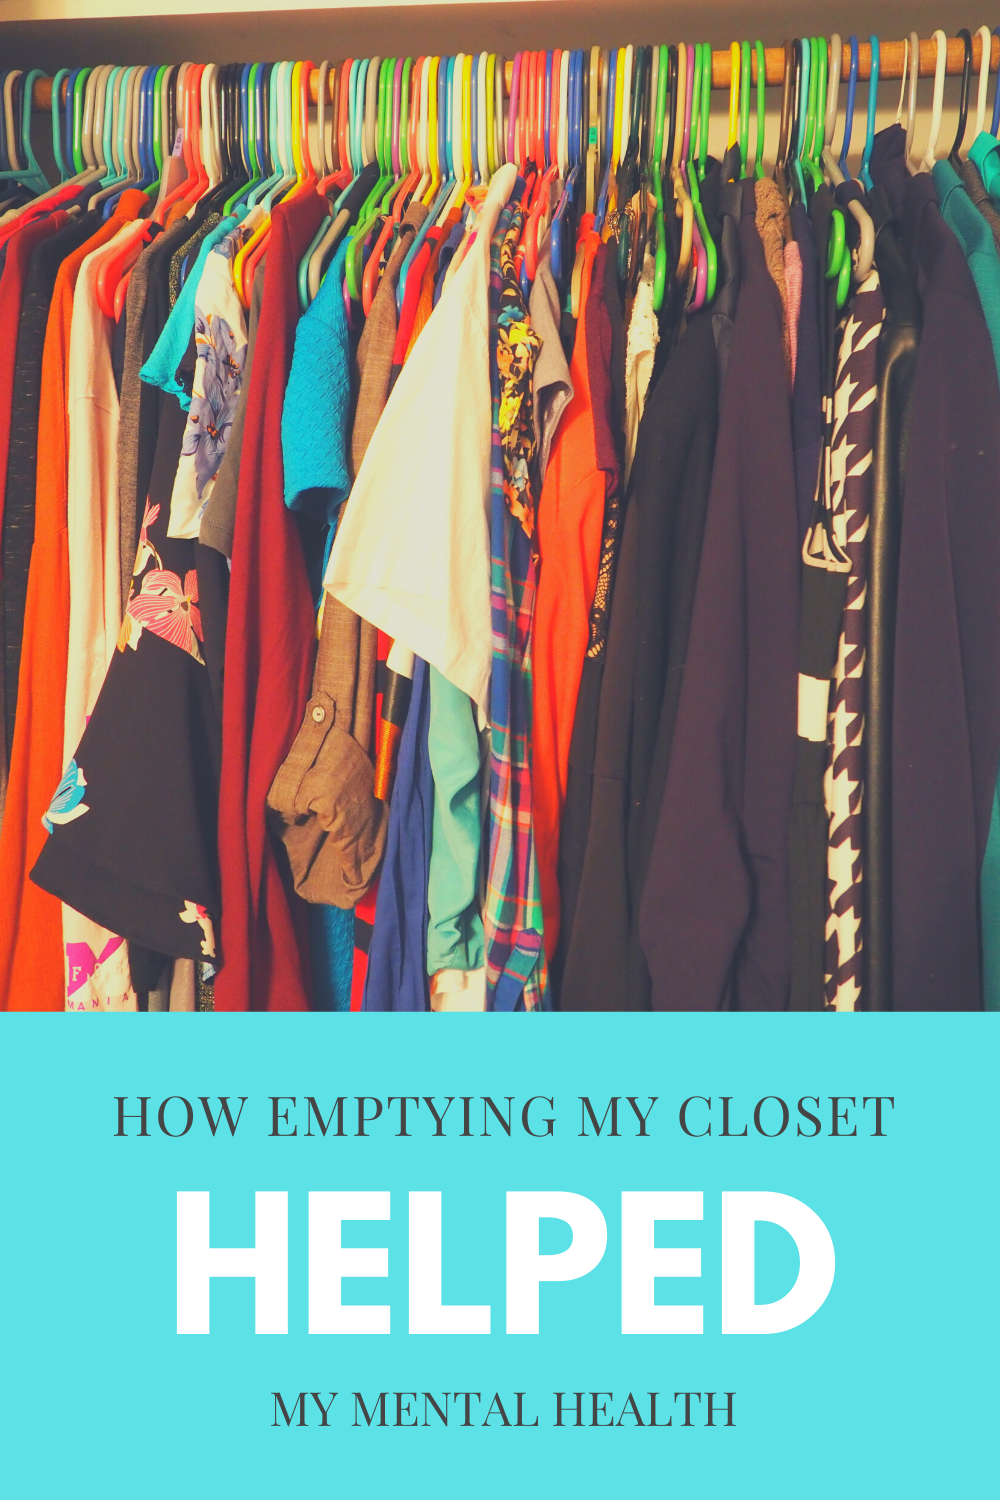 How Emptying My Closet Helped My Mental Health